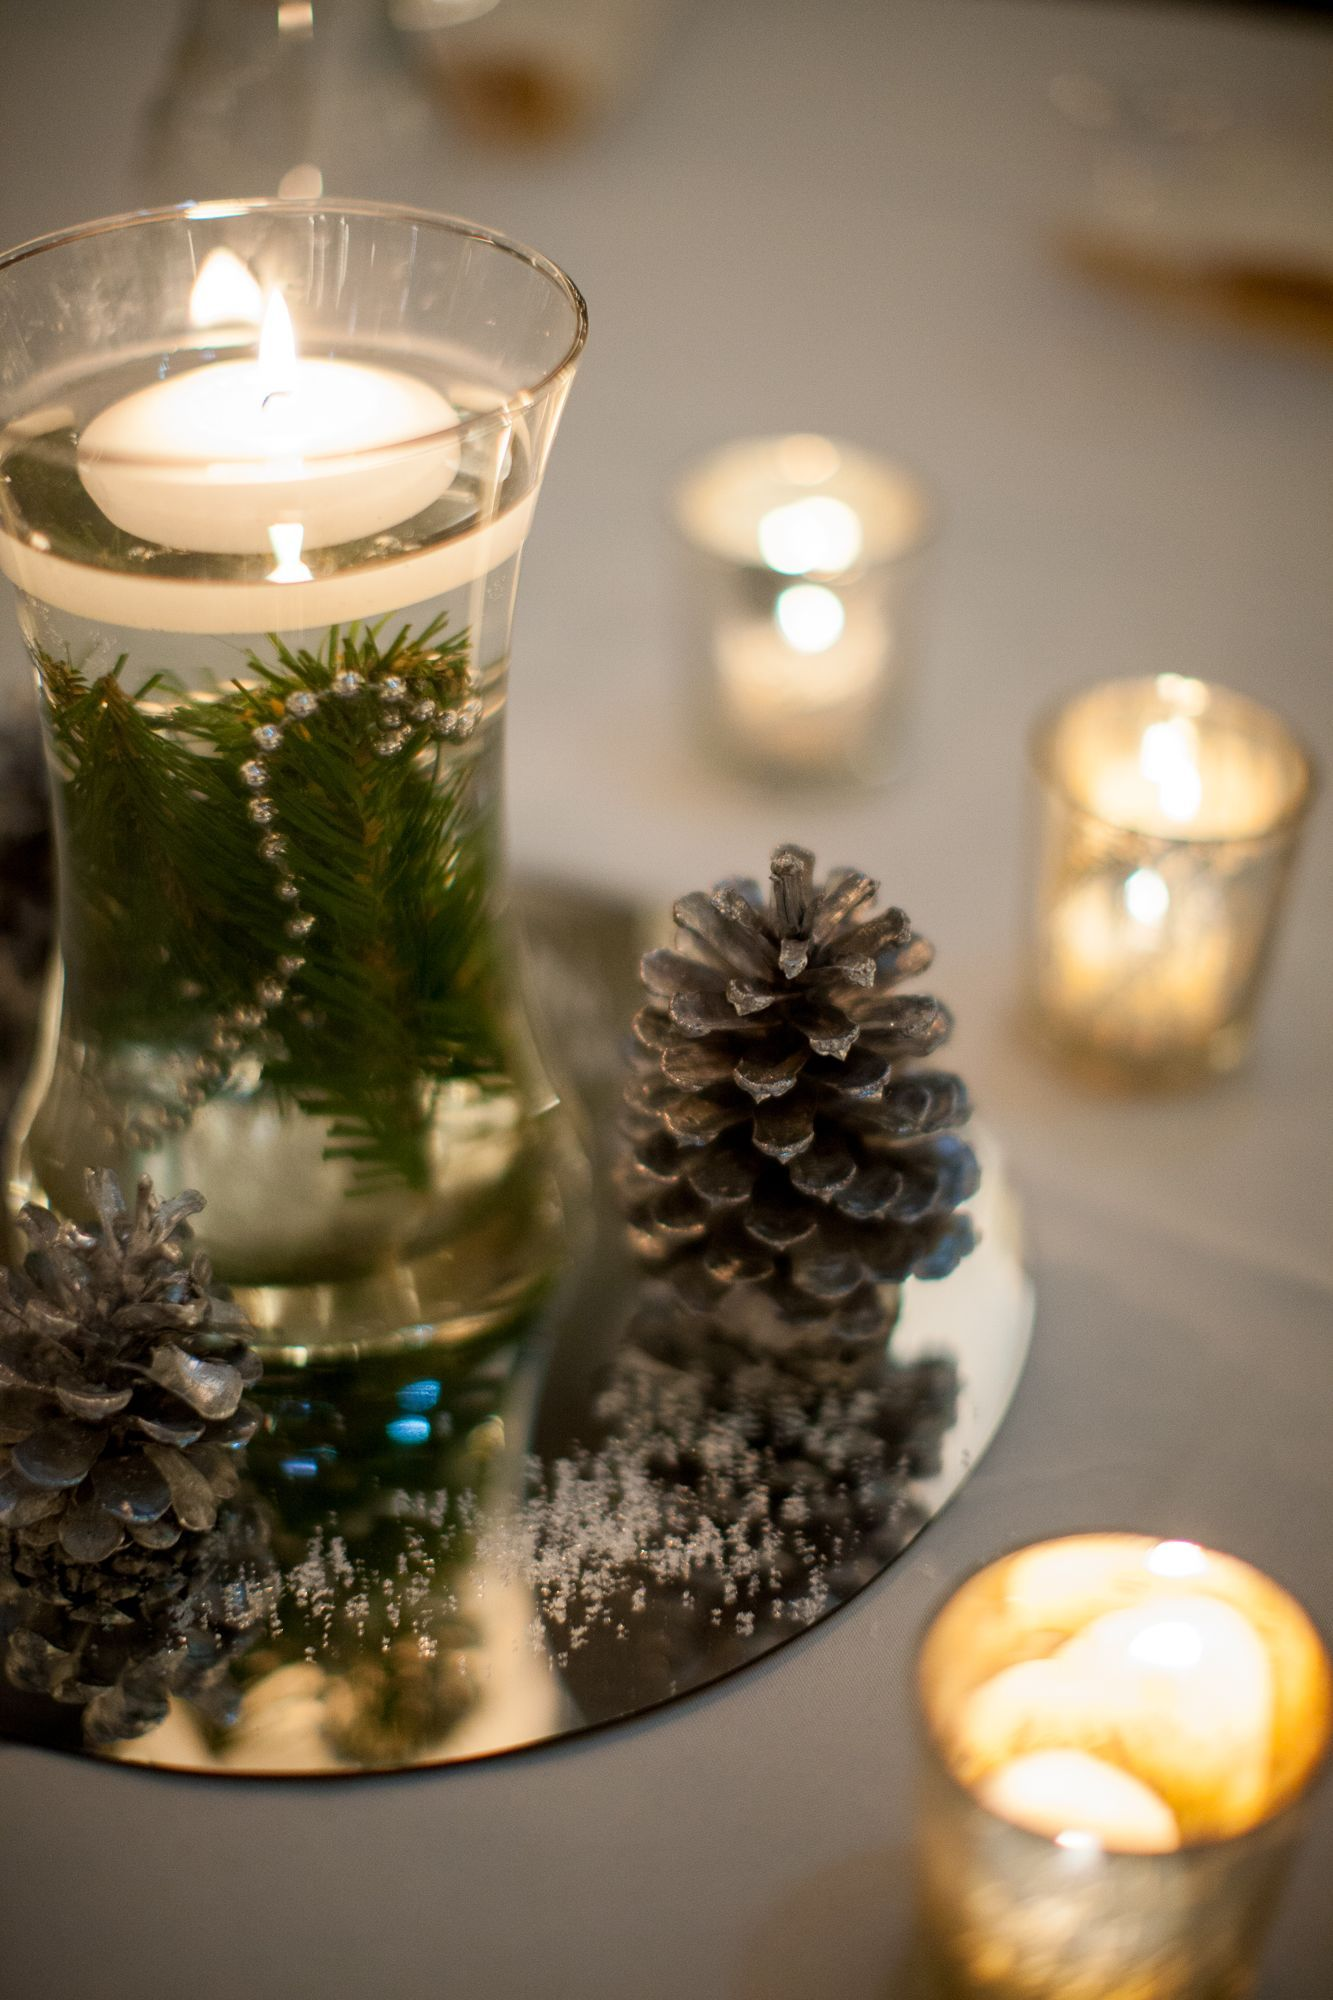 DIY Floating Winter Tea Candle Centerpieces with Pinecones